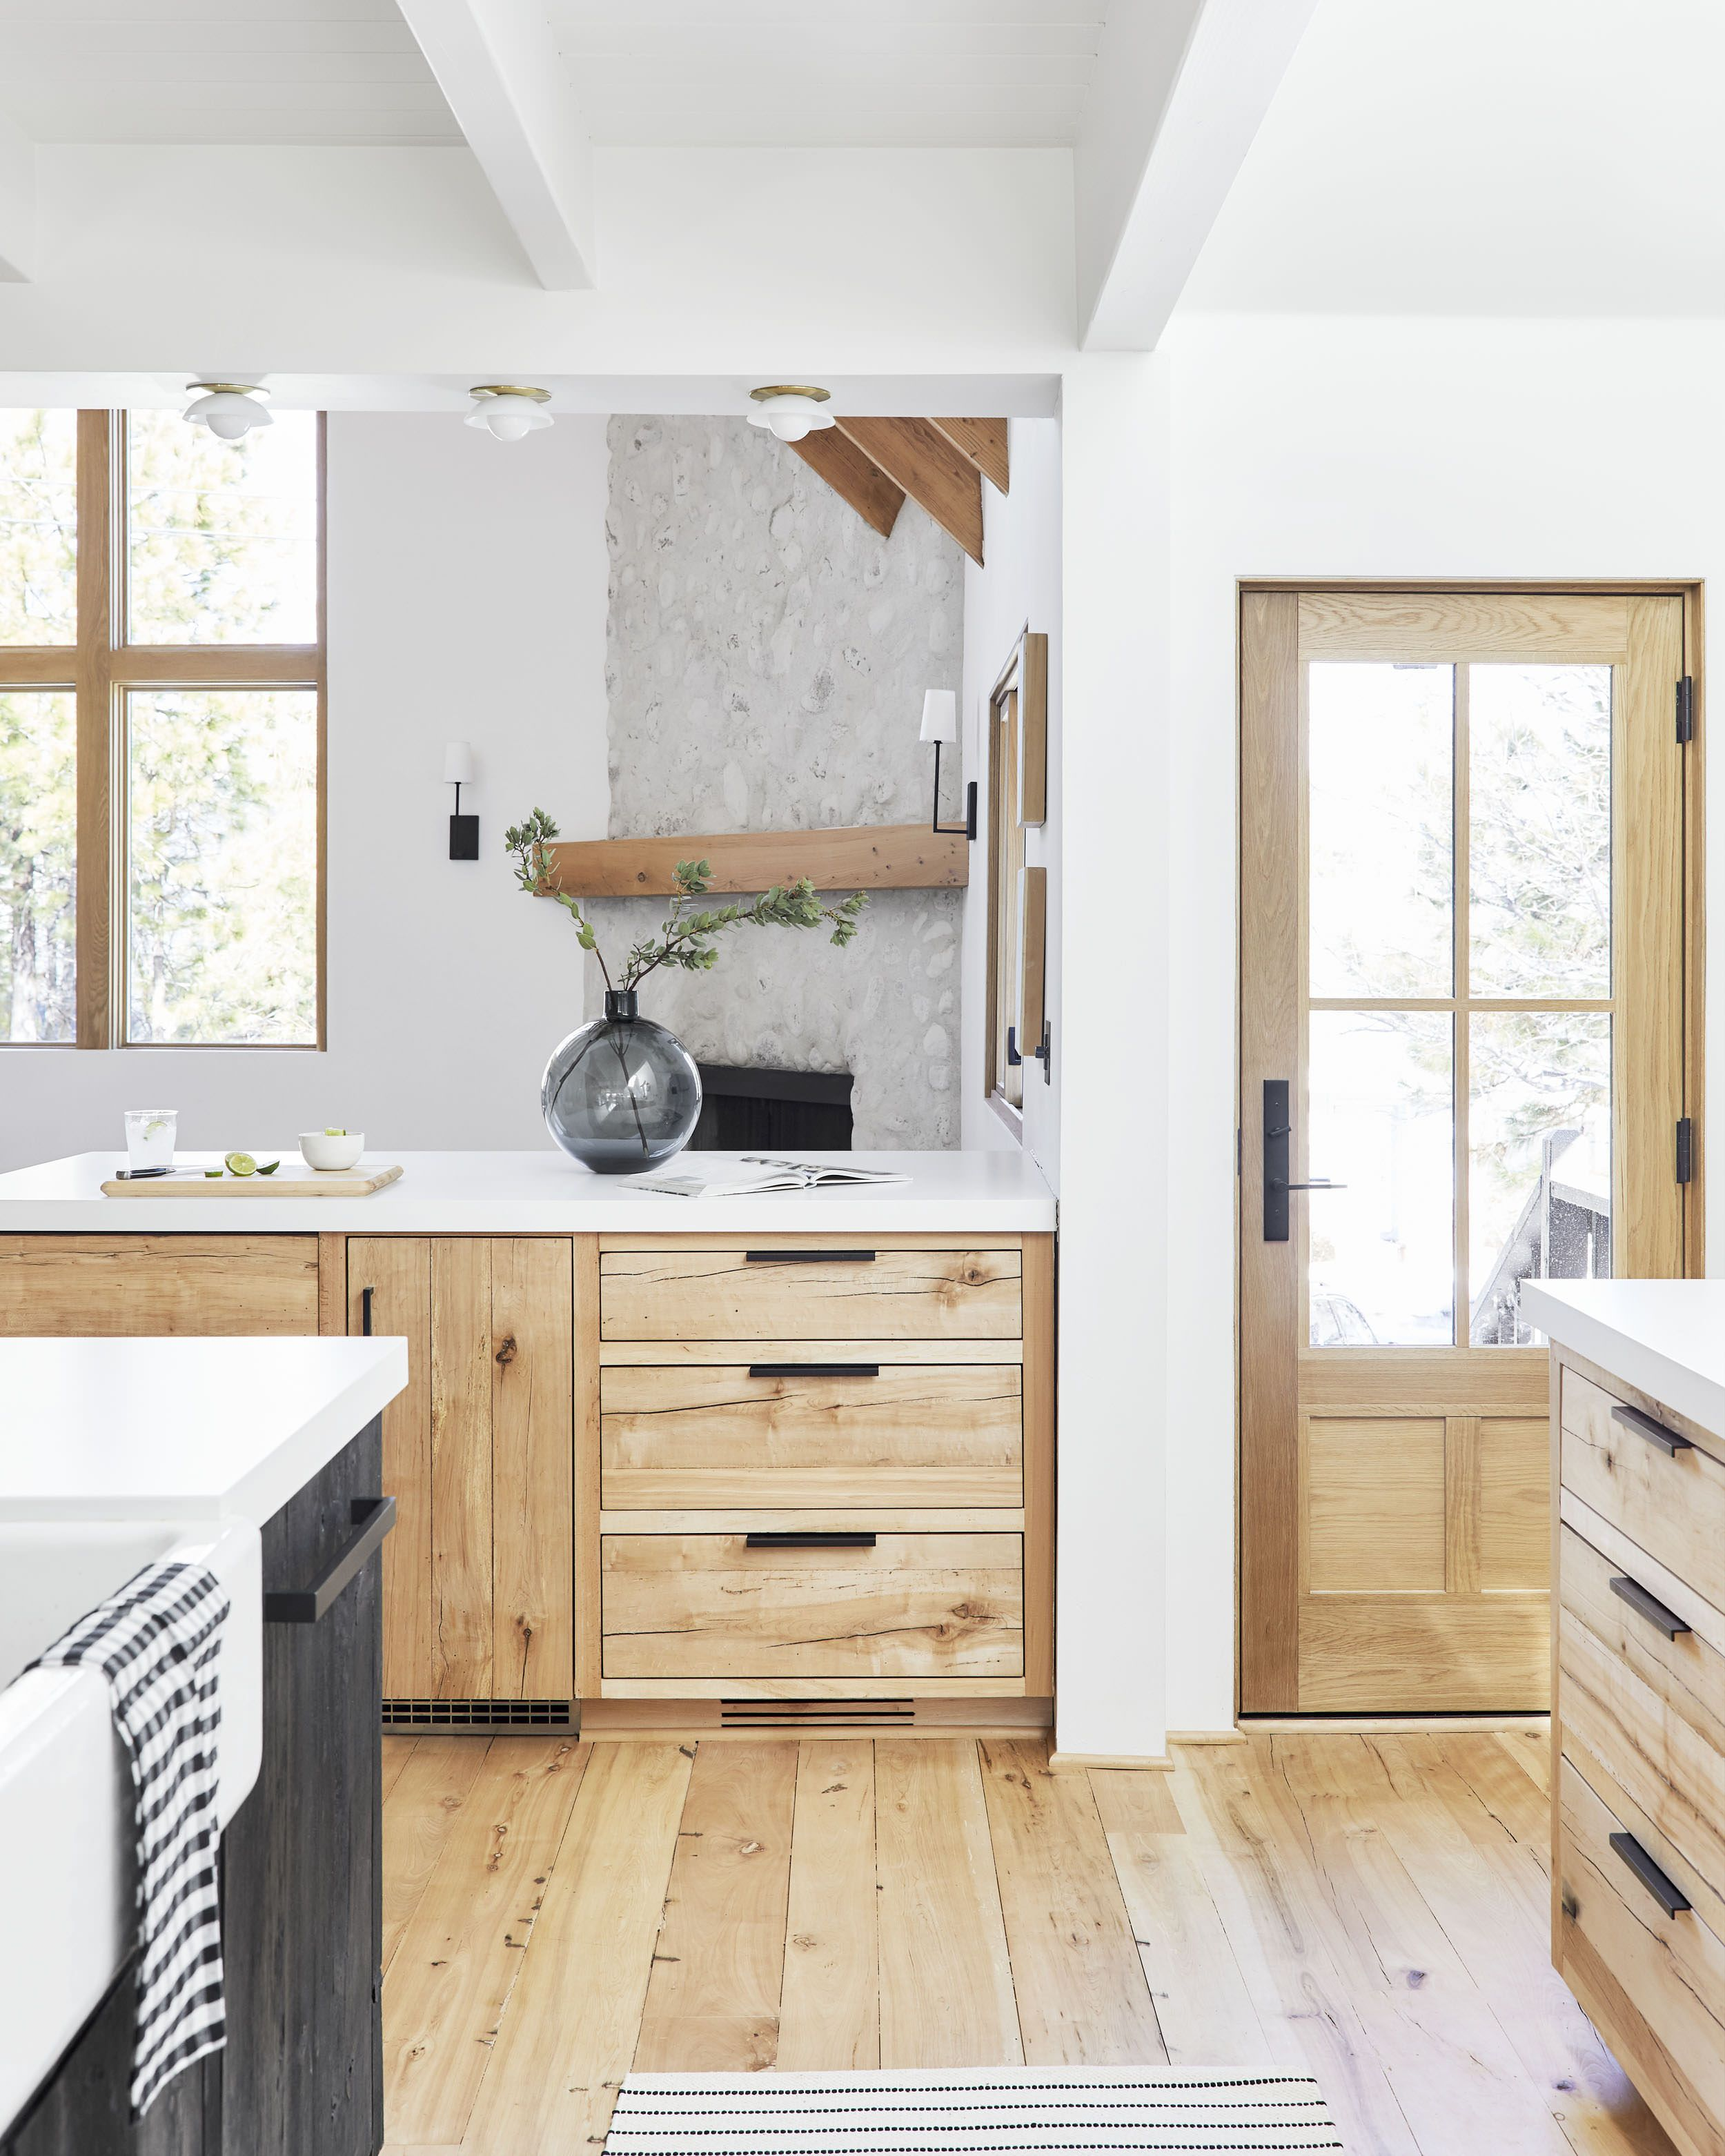 60 Of Our Favorite Budget Friendly Cabinet Hardware Picks Affordable Cabinets Home Kitchens Kitchen Renovation